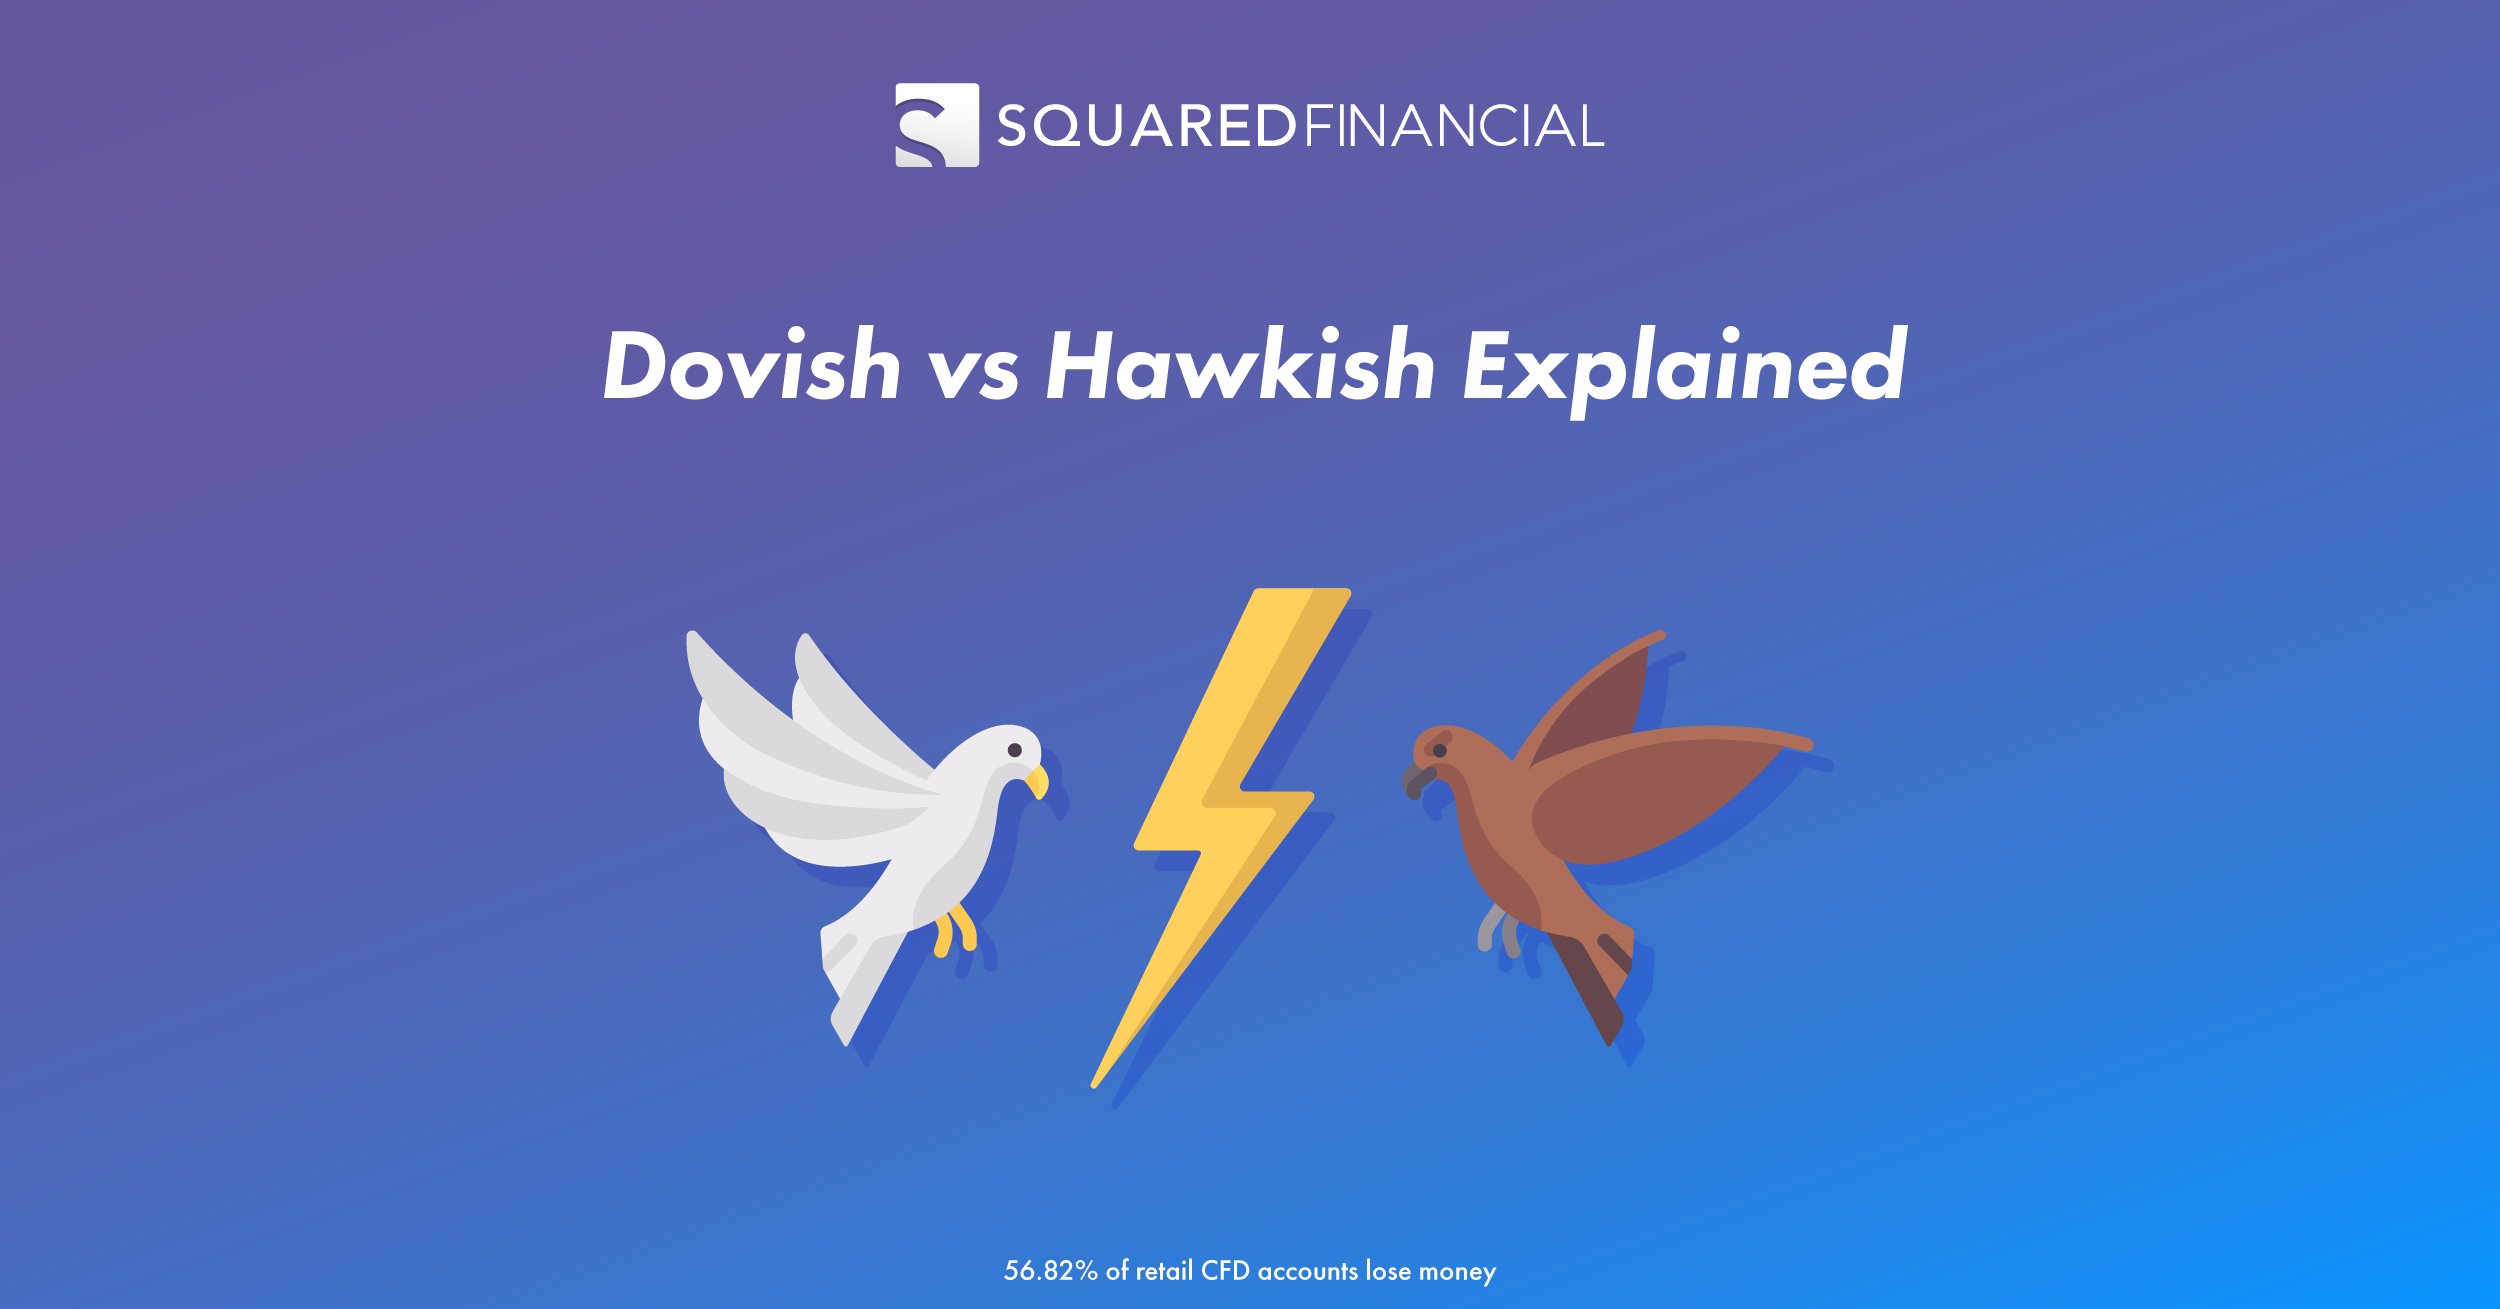 Dovish vs Hawkish Explained